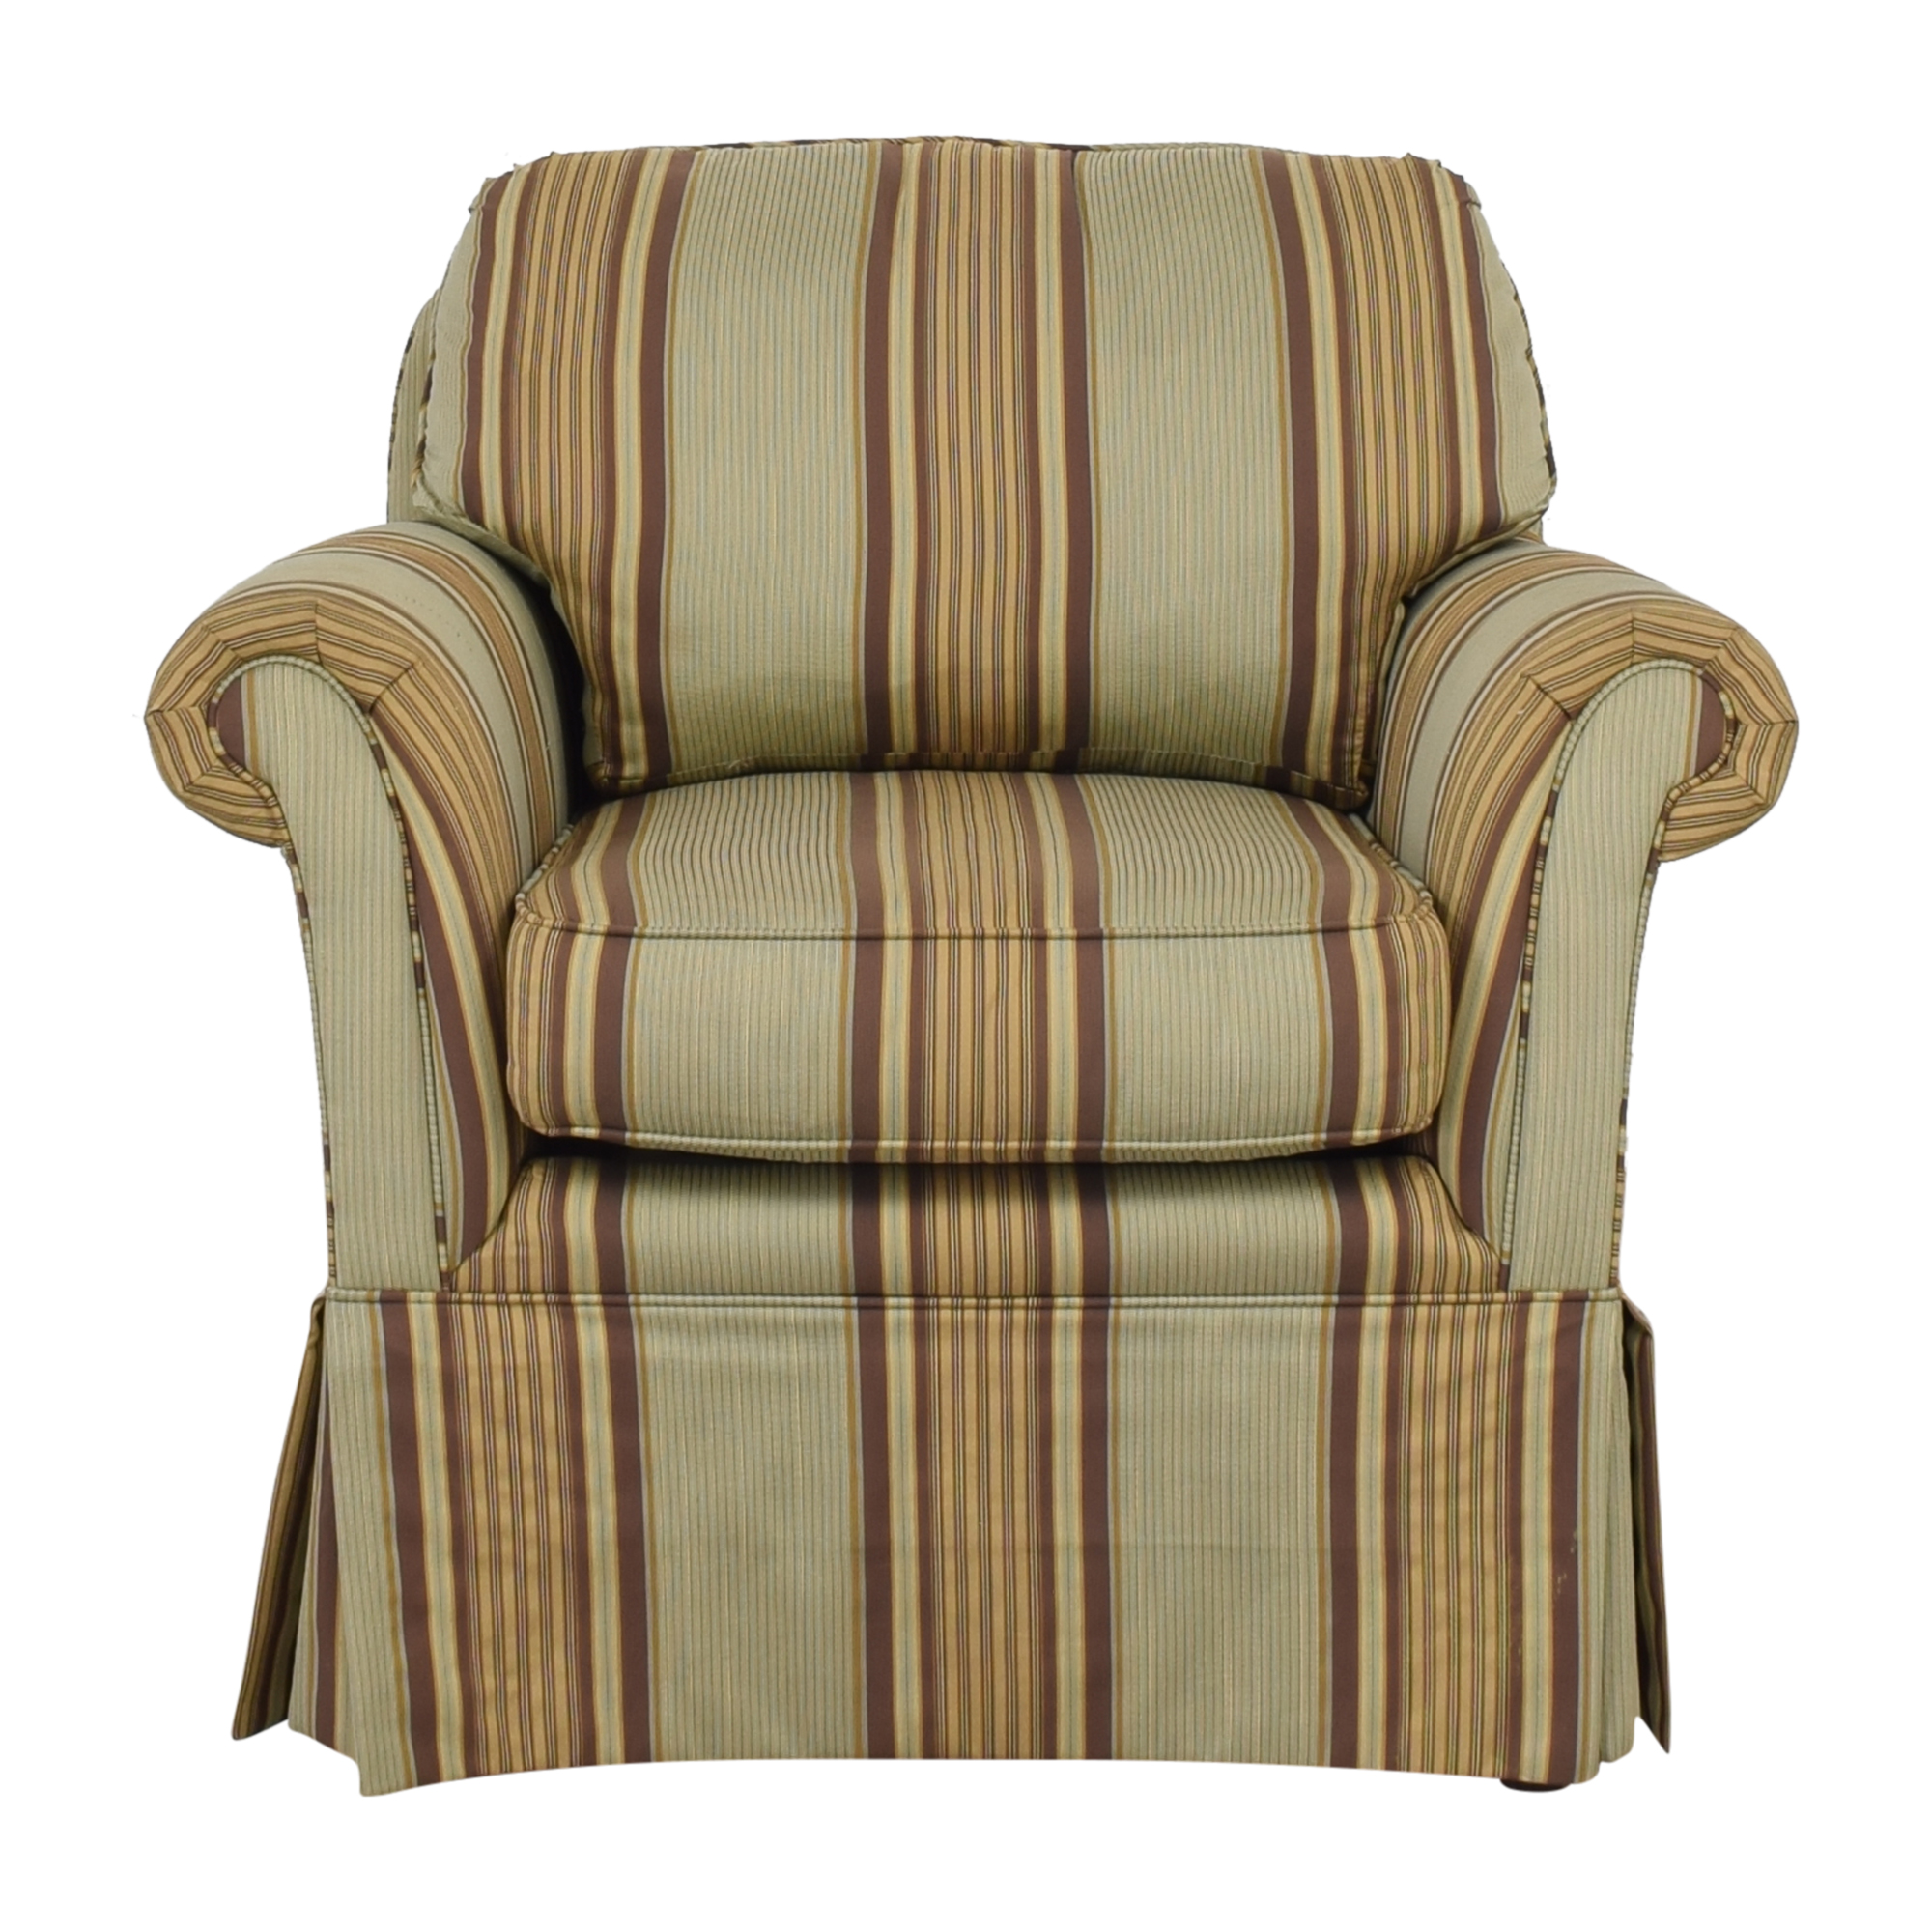 Harden Roll Arm Lounge Chair sale